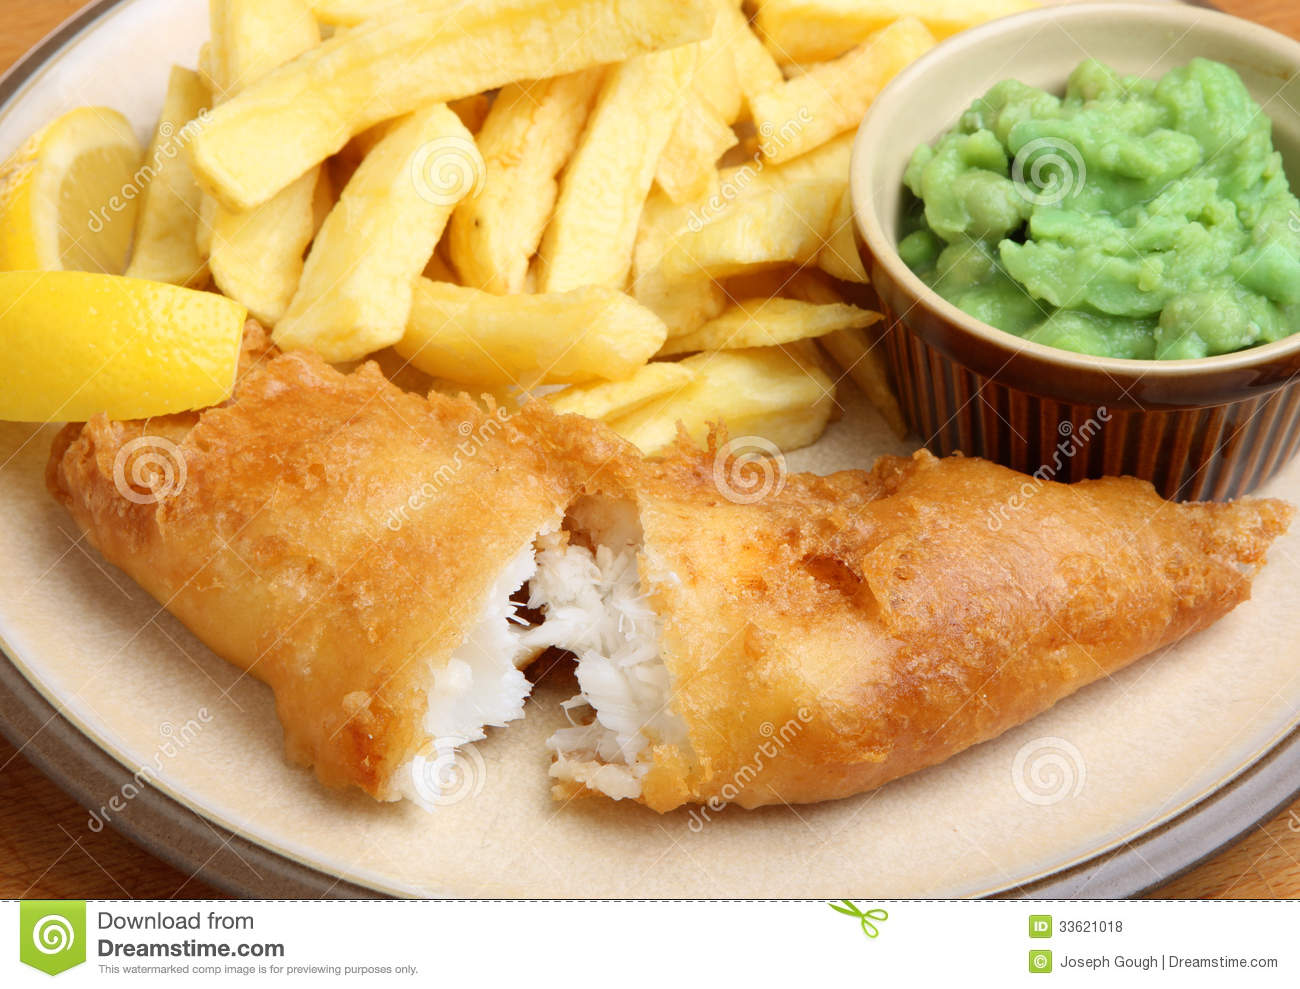 ... cod fillet with chips and mushy peas. Shallow DoF, focus on the fish